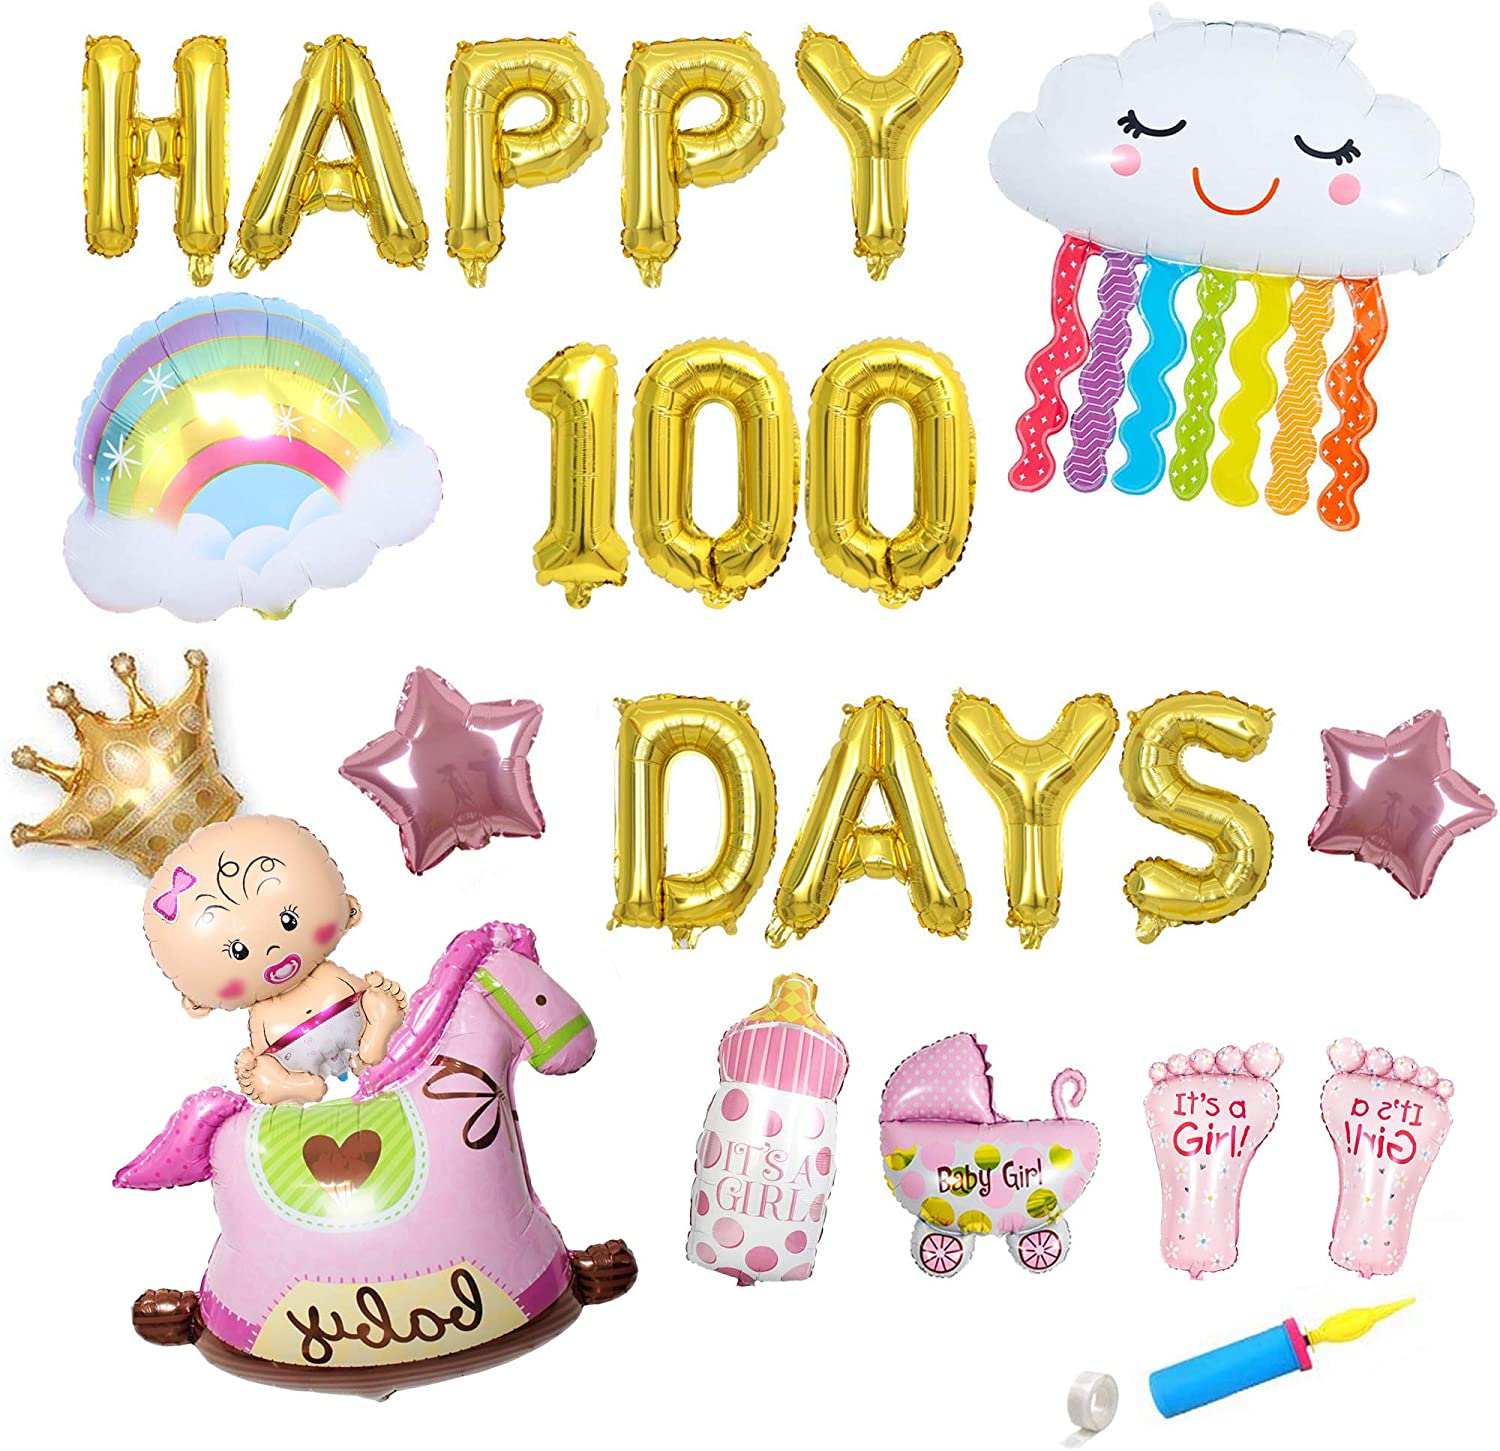 100 Days Foil Balloons Banner, Baby's 100 Days Themed Party Decorations, Baby Girl Happy 100 Days Party Decorations Supplies (Golden). Foil Balloons Birthday Party Set, Baby Shower Decorations, Cute Rainbow Balloons